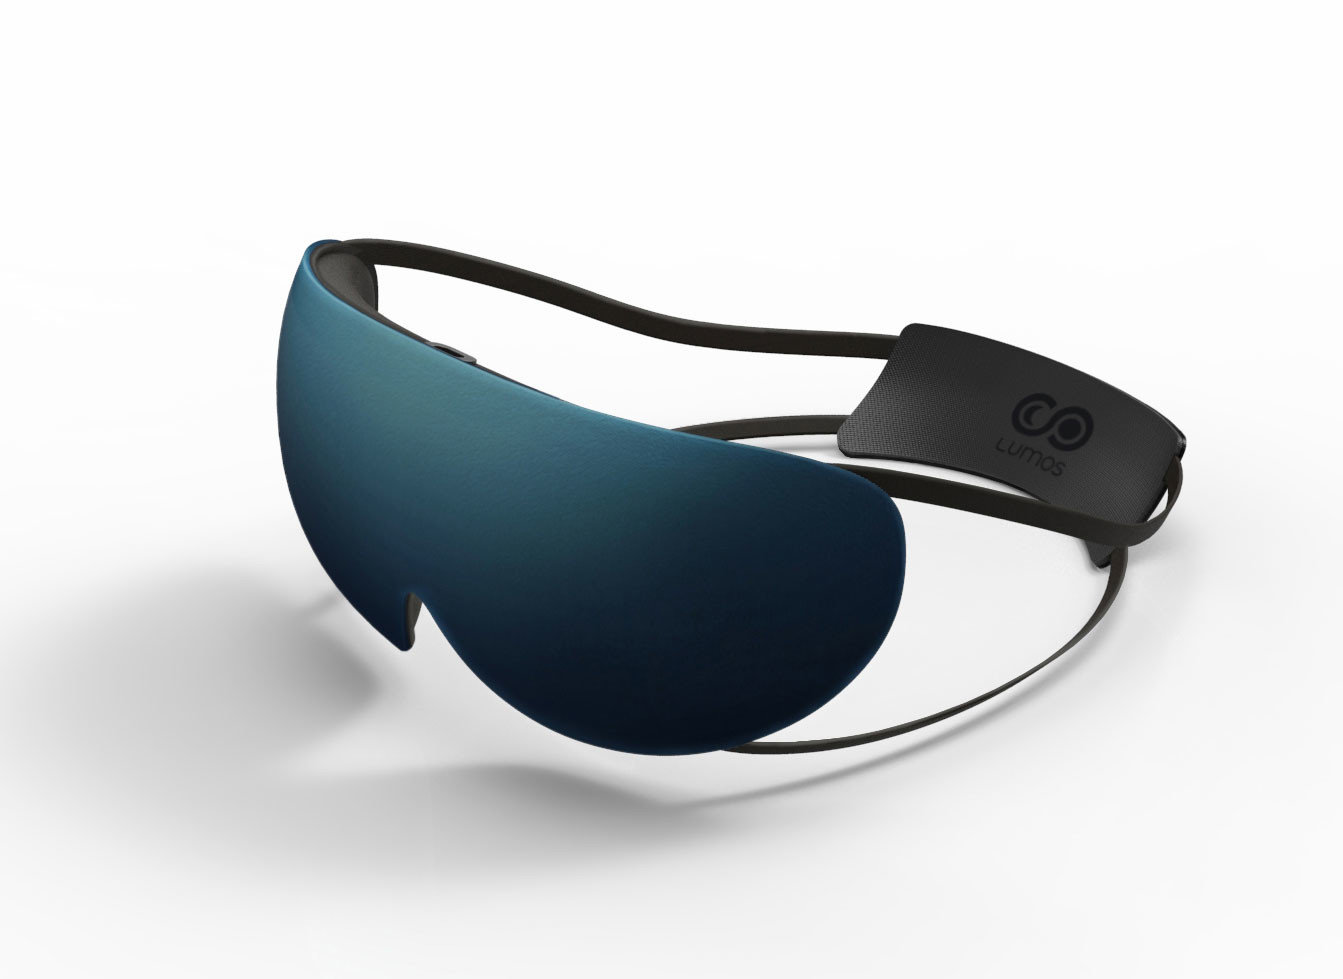 News Travel Shop Travel Tech eyewear goggles personal protective equipment product design glasses product vision care font sunglasses footwear accessory